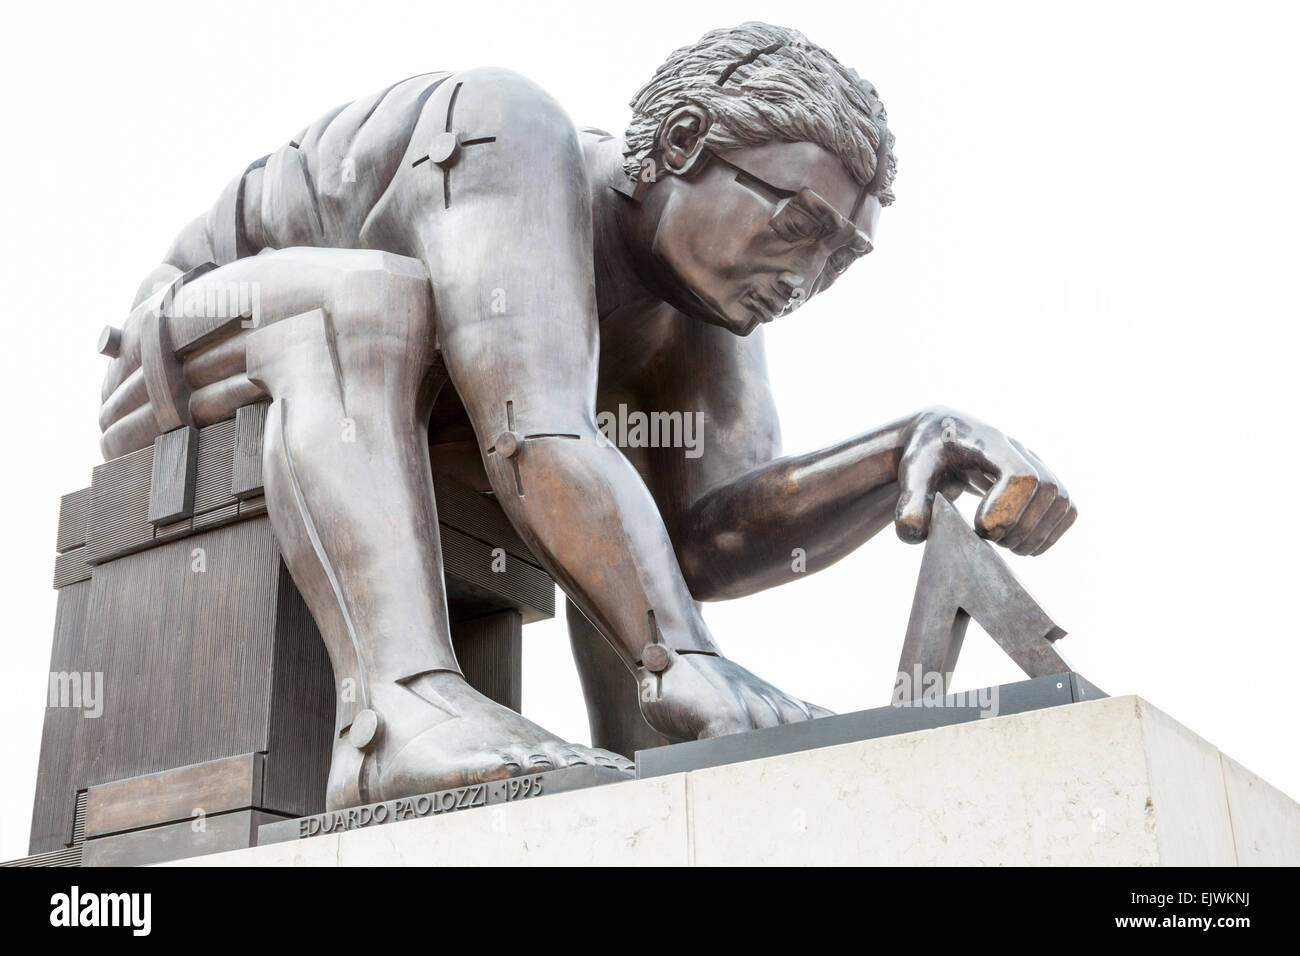 The statue of Sir Isaac Newton by sculptor Eduardo Paolozzi on the British Library piazza, London, England, UK - Stock Image